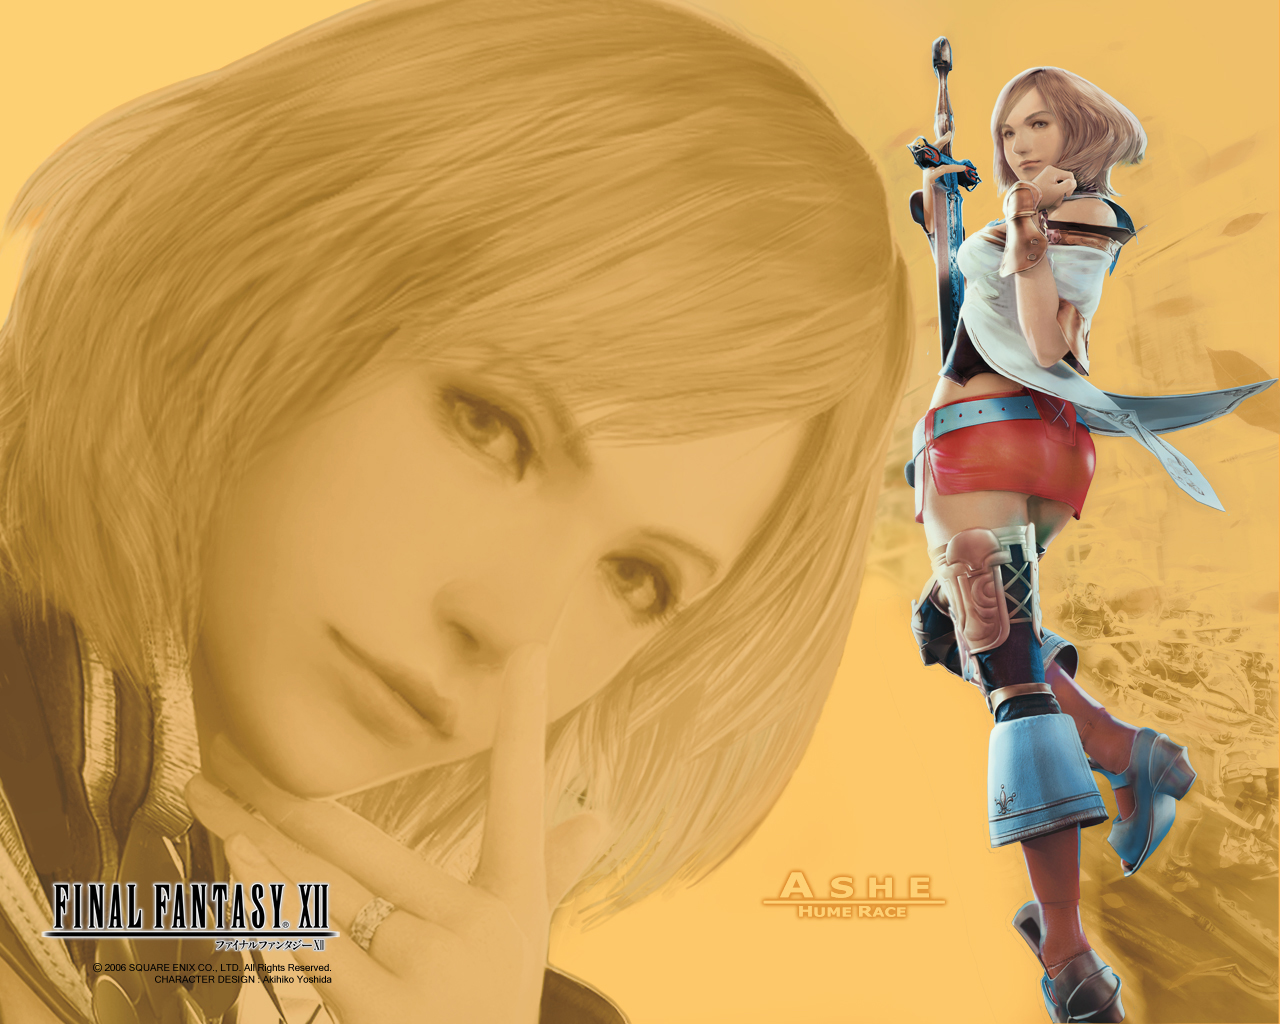 final fantasy wallpaper, final fantasy 7 wallpapers, final fantasy 13 wallpaper, final fantasy x wallpapers, final fantasy 8 wallpapers, final fantasy wallpapers hd-81